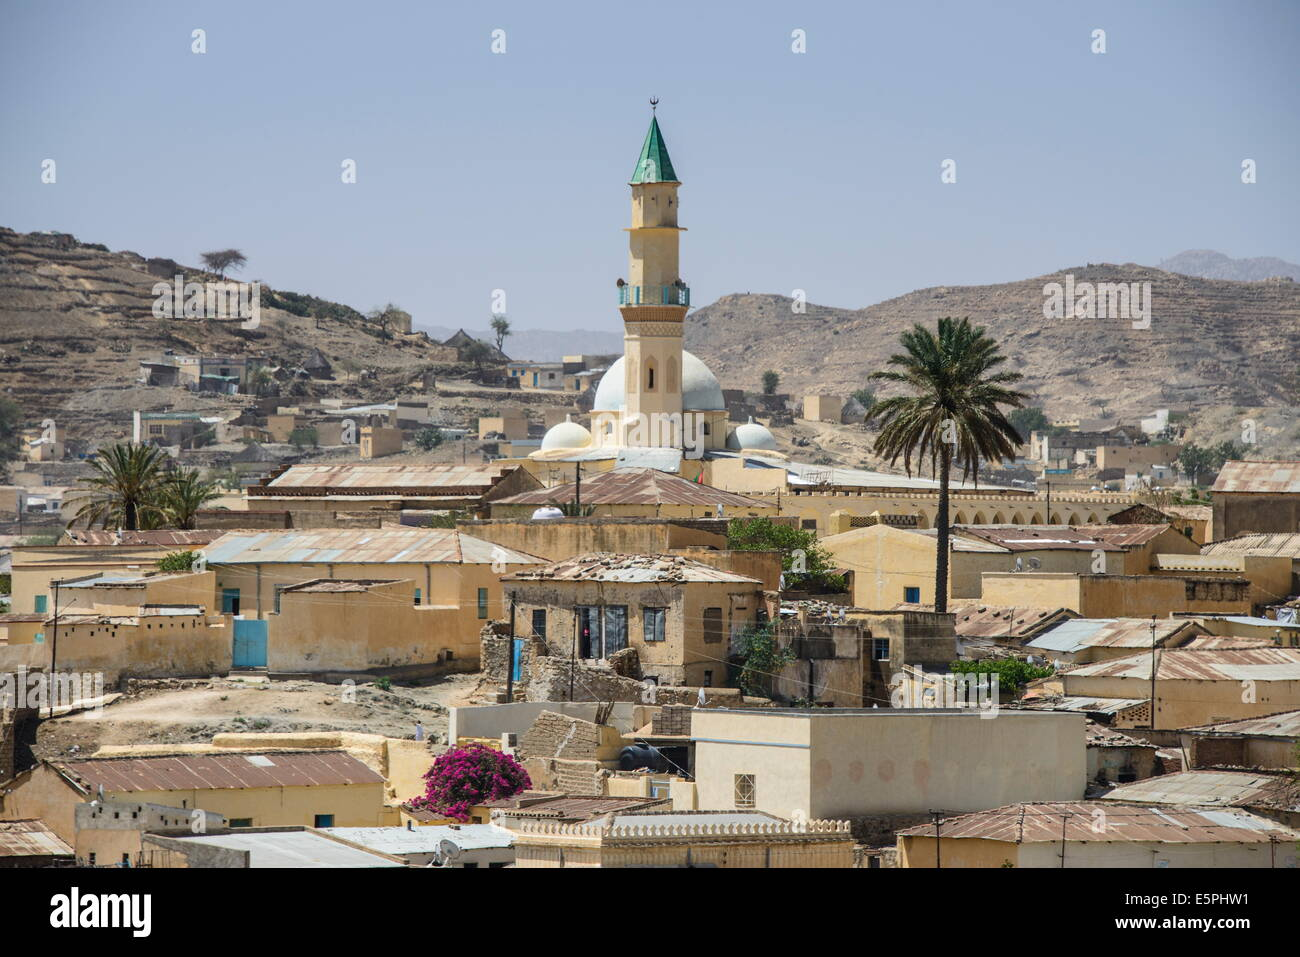 View over the town of Keren, Eritrea, Africa - Stock Image